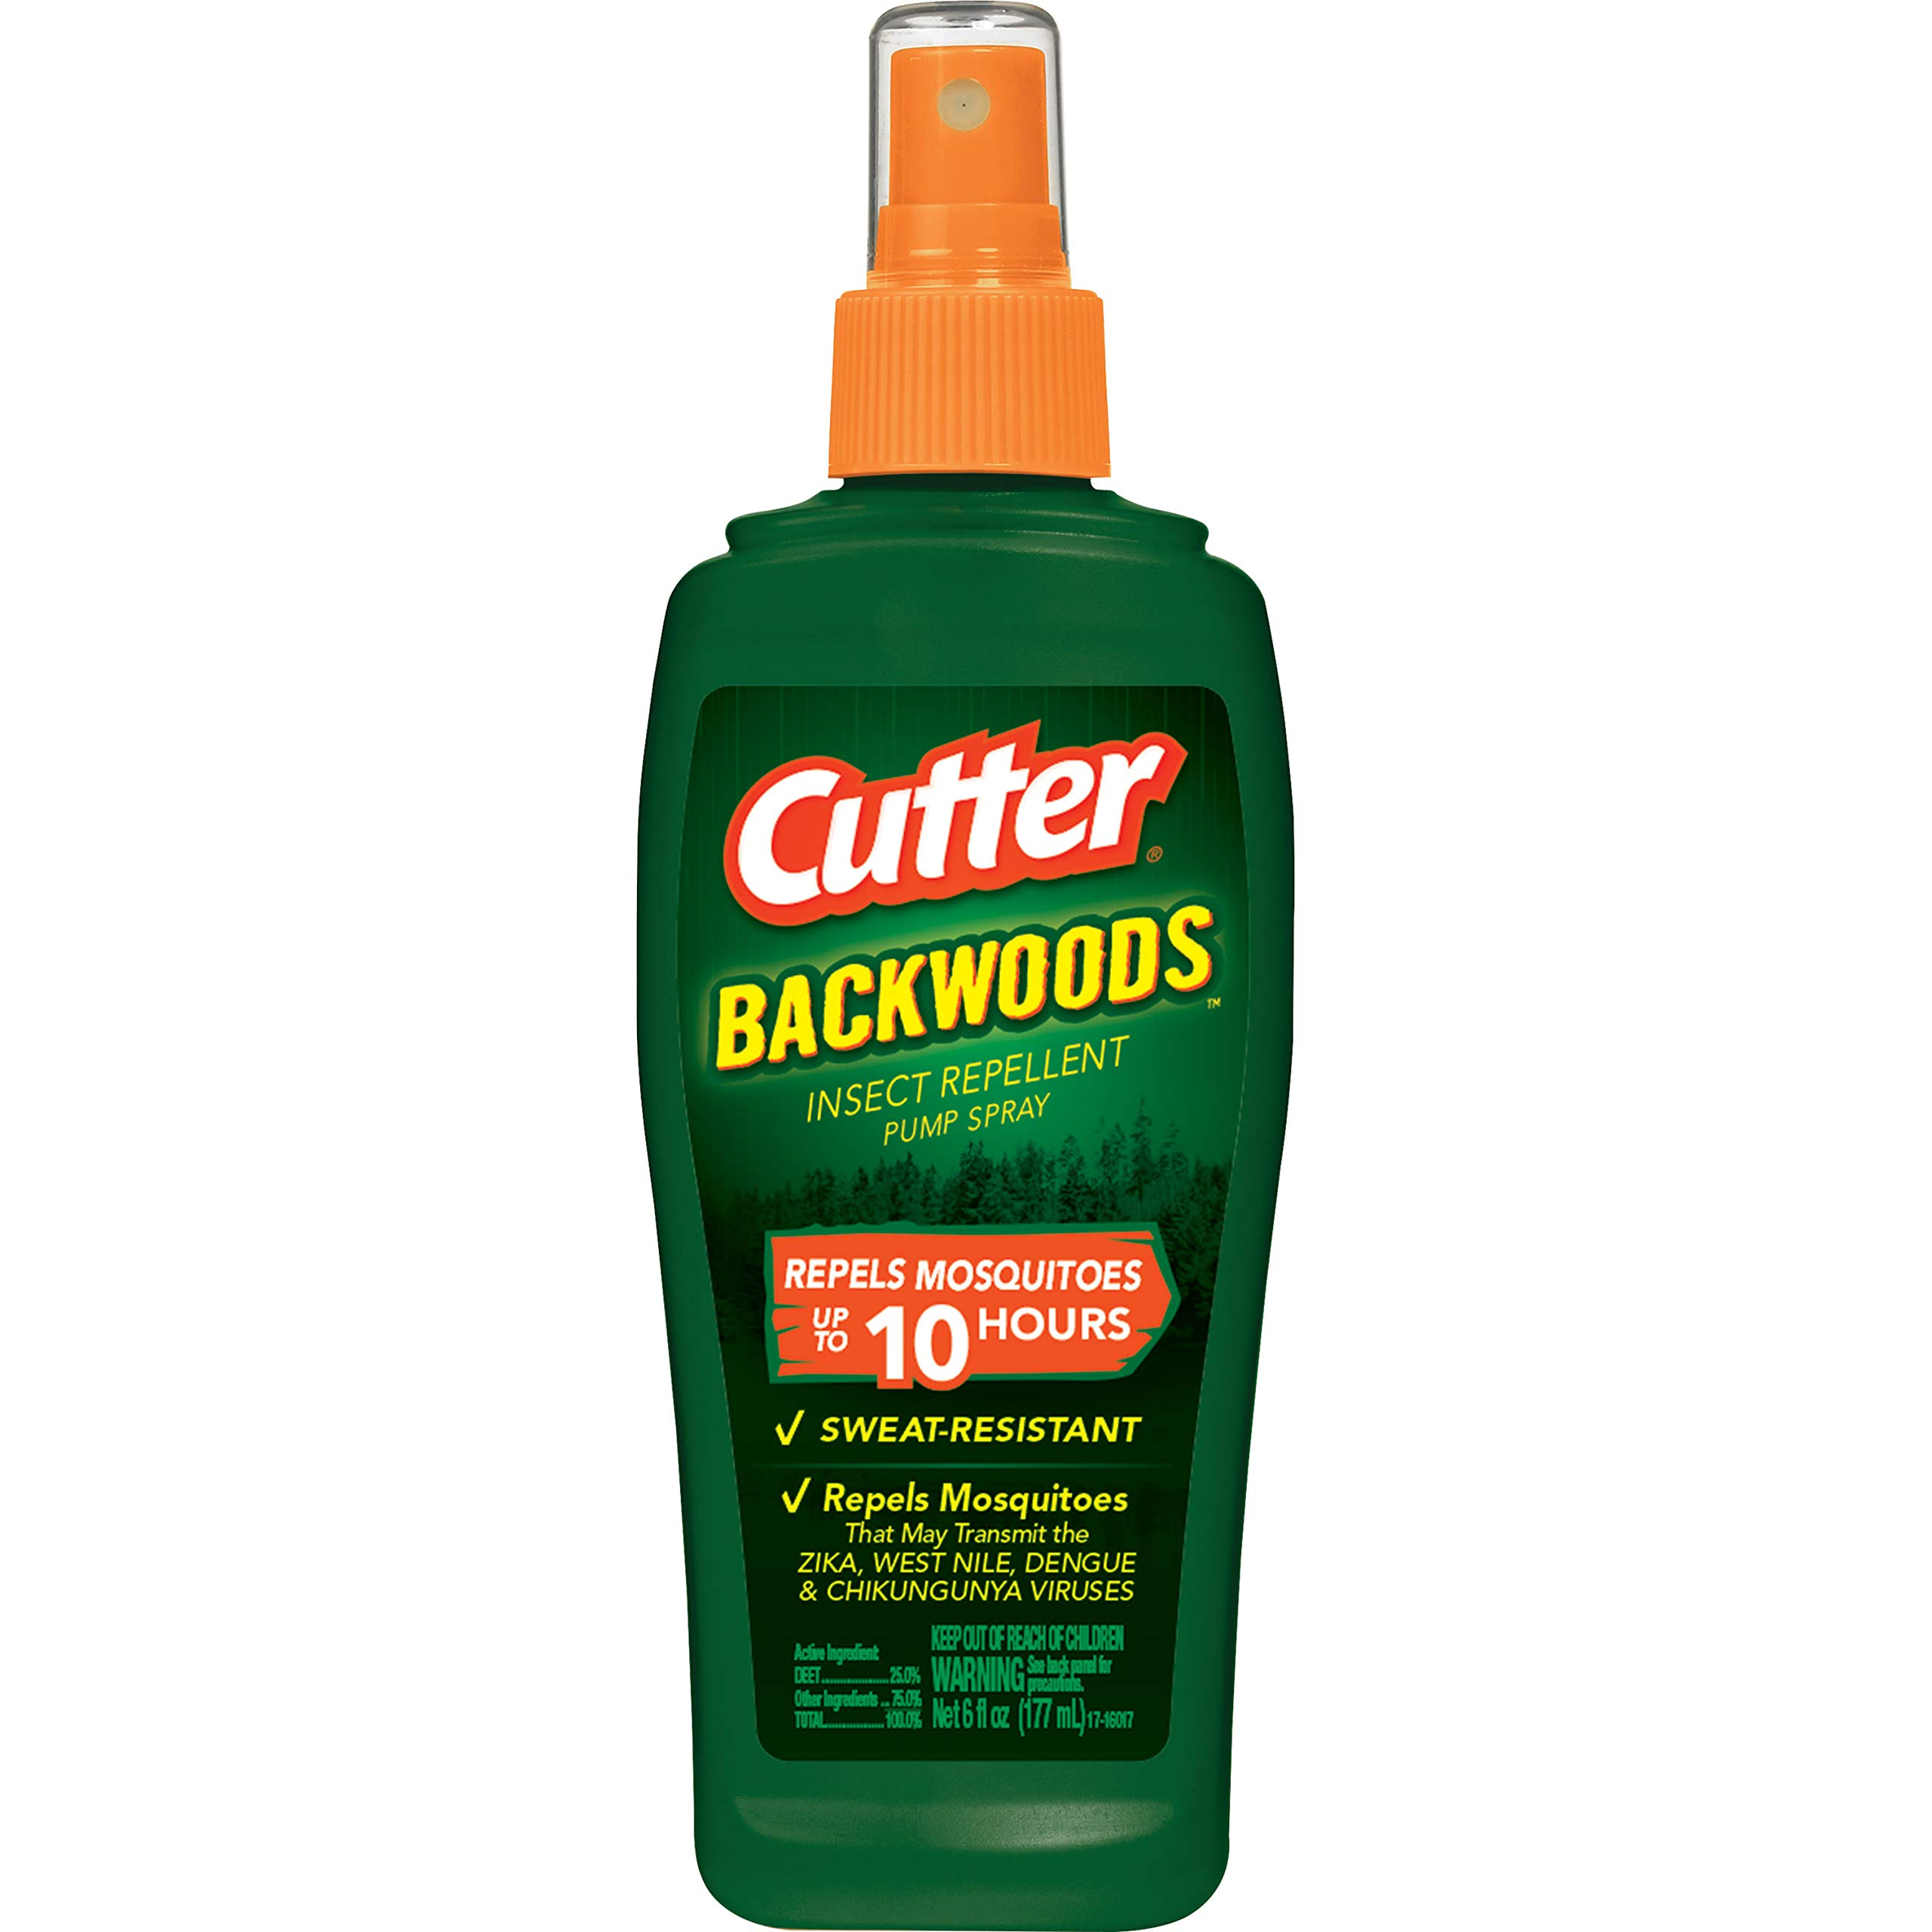 Cutter Backwoods Insect Repellent Pump Spray, 6-Ounce, 12-Pack by Cutter (Image #1)